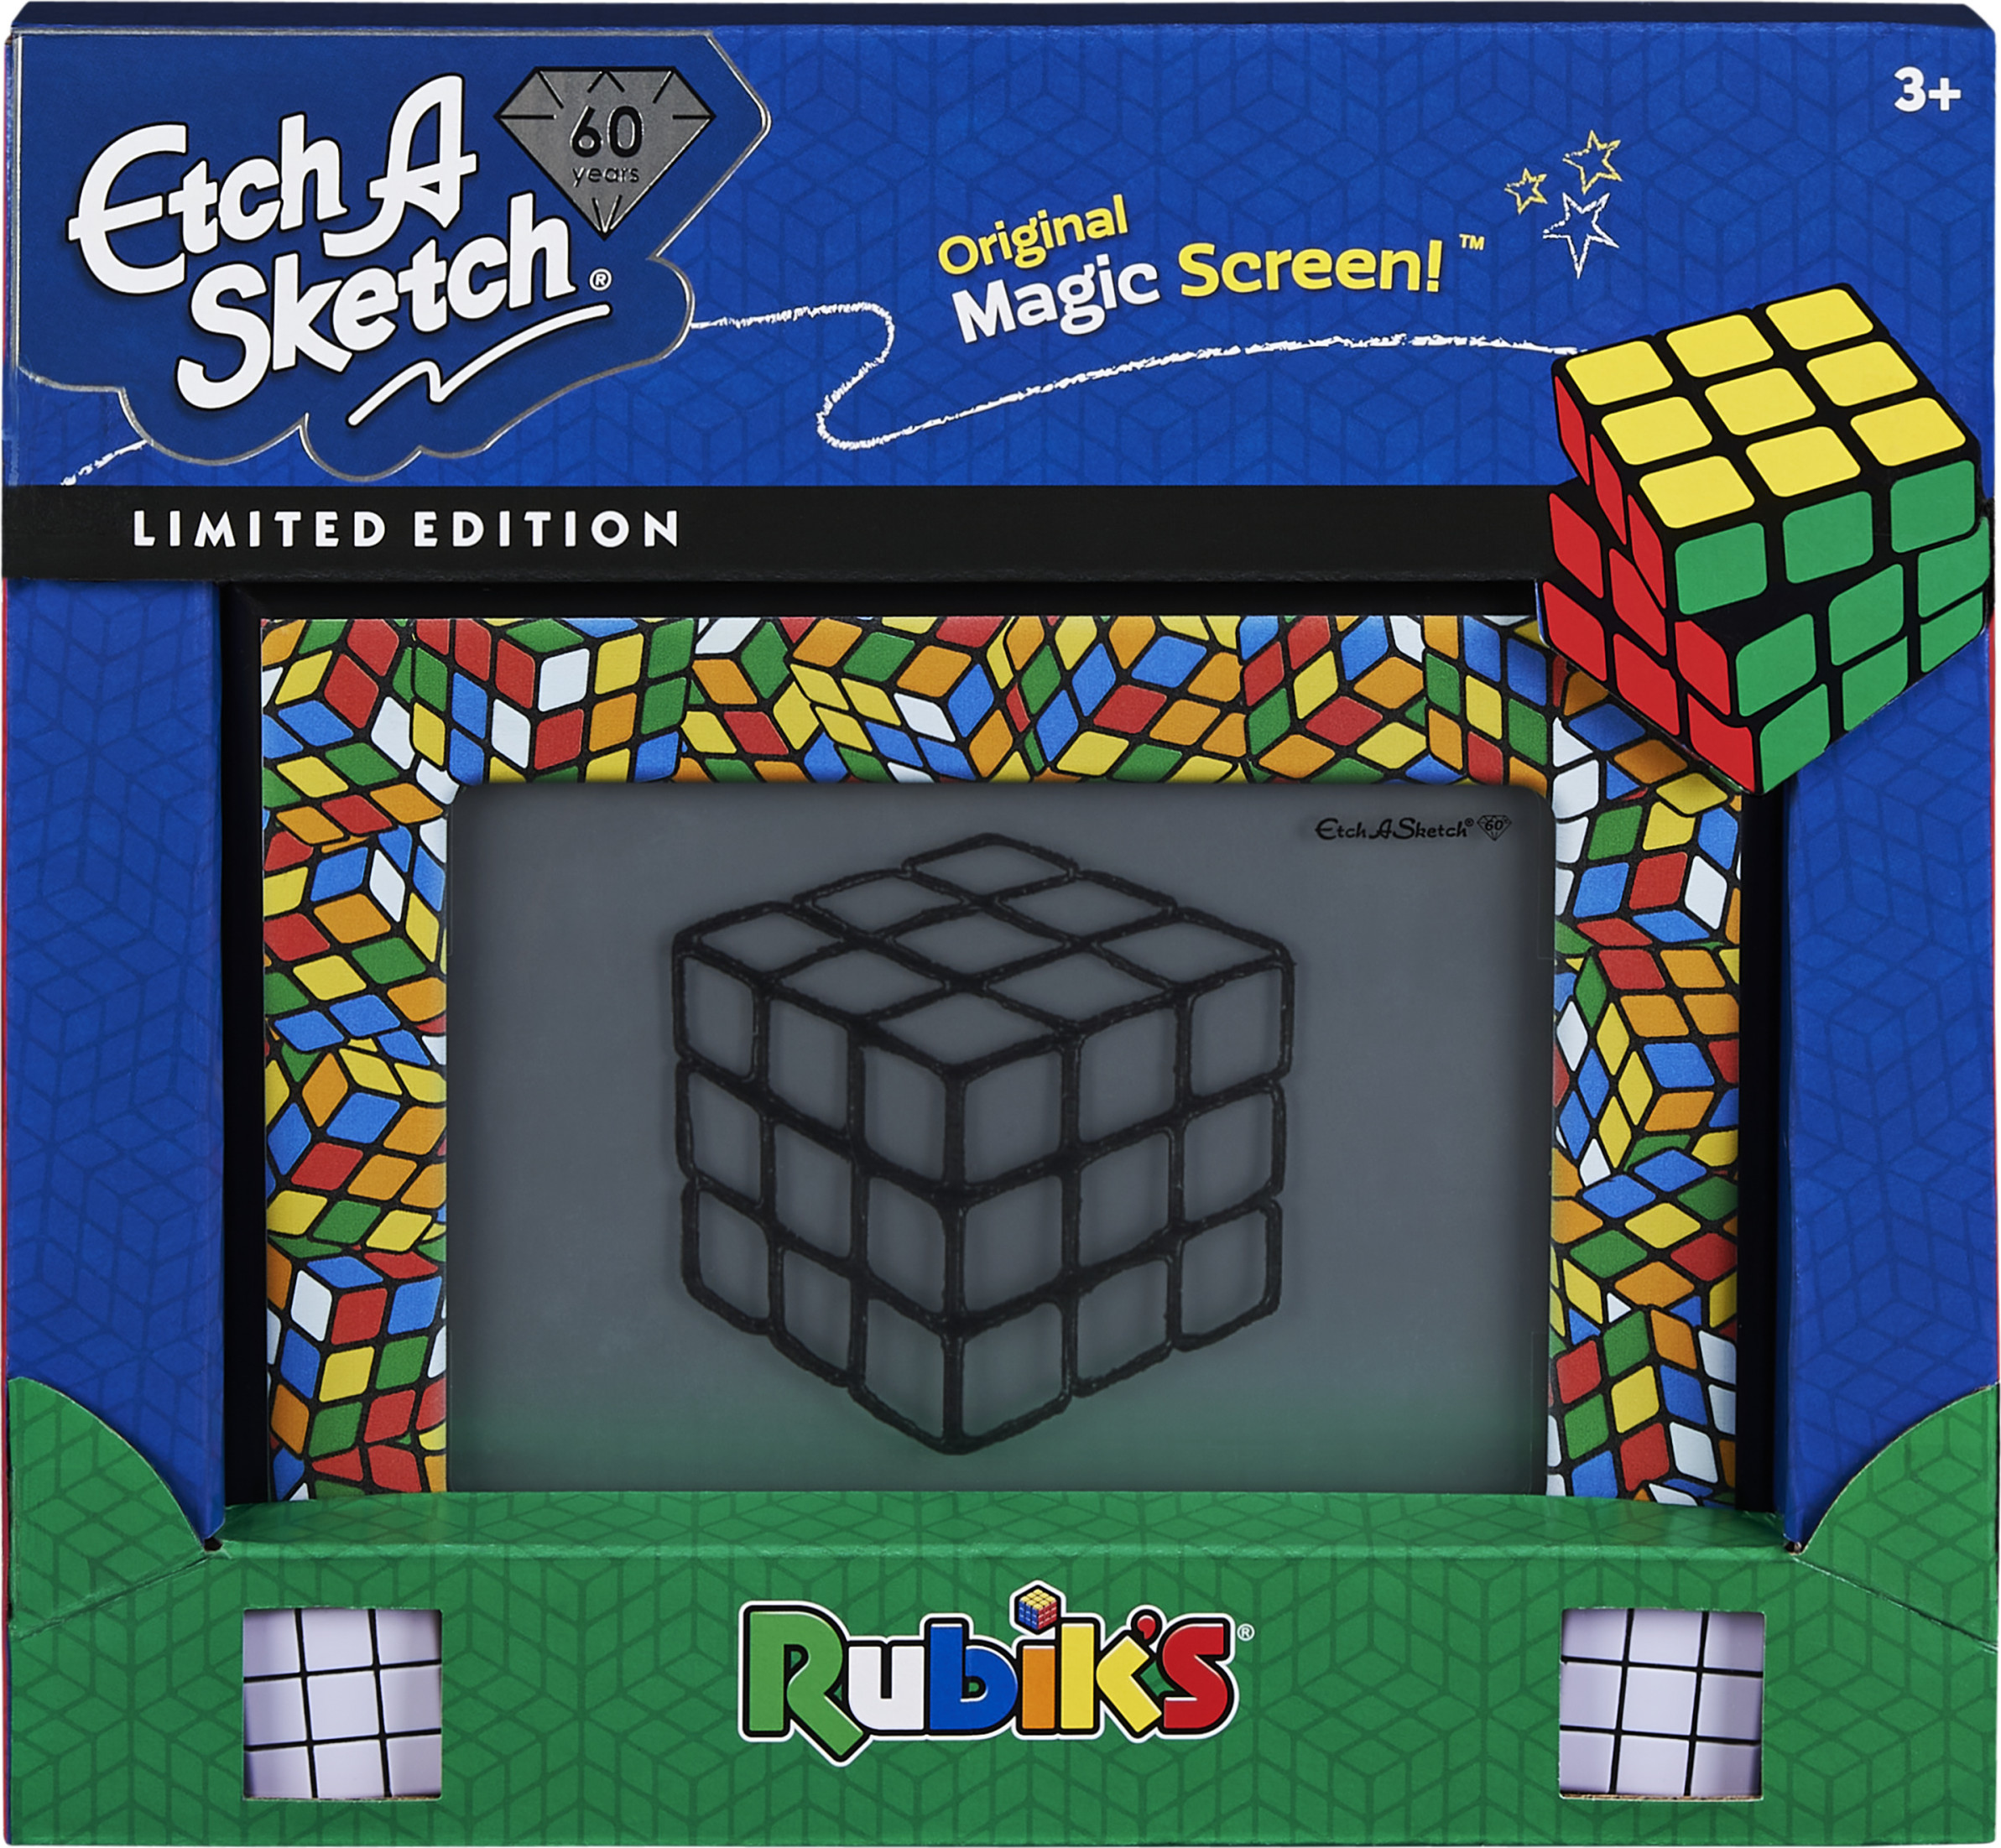 Etch A Sketch Classic, Rubik's Cube Limited-Edition Drawing Toy with Magic Screen, for Ages 3 and Up (Walmart)